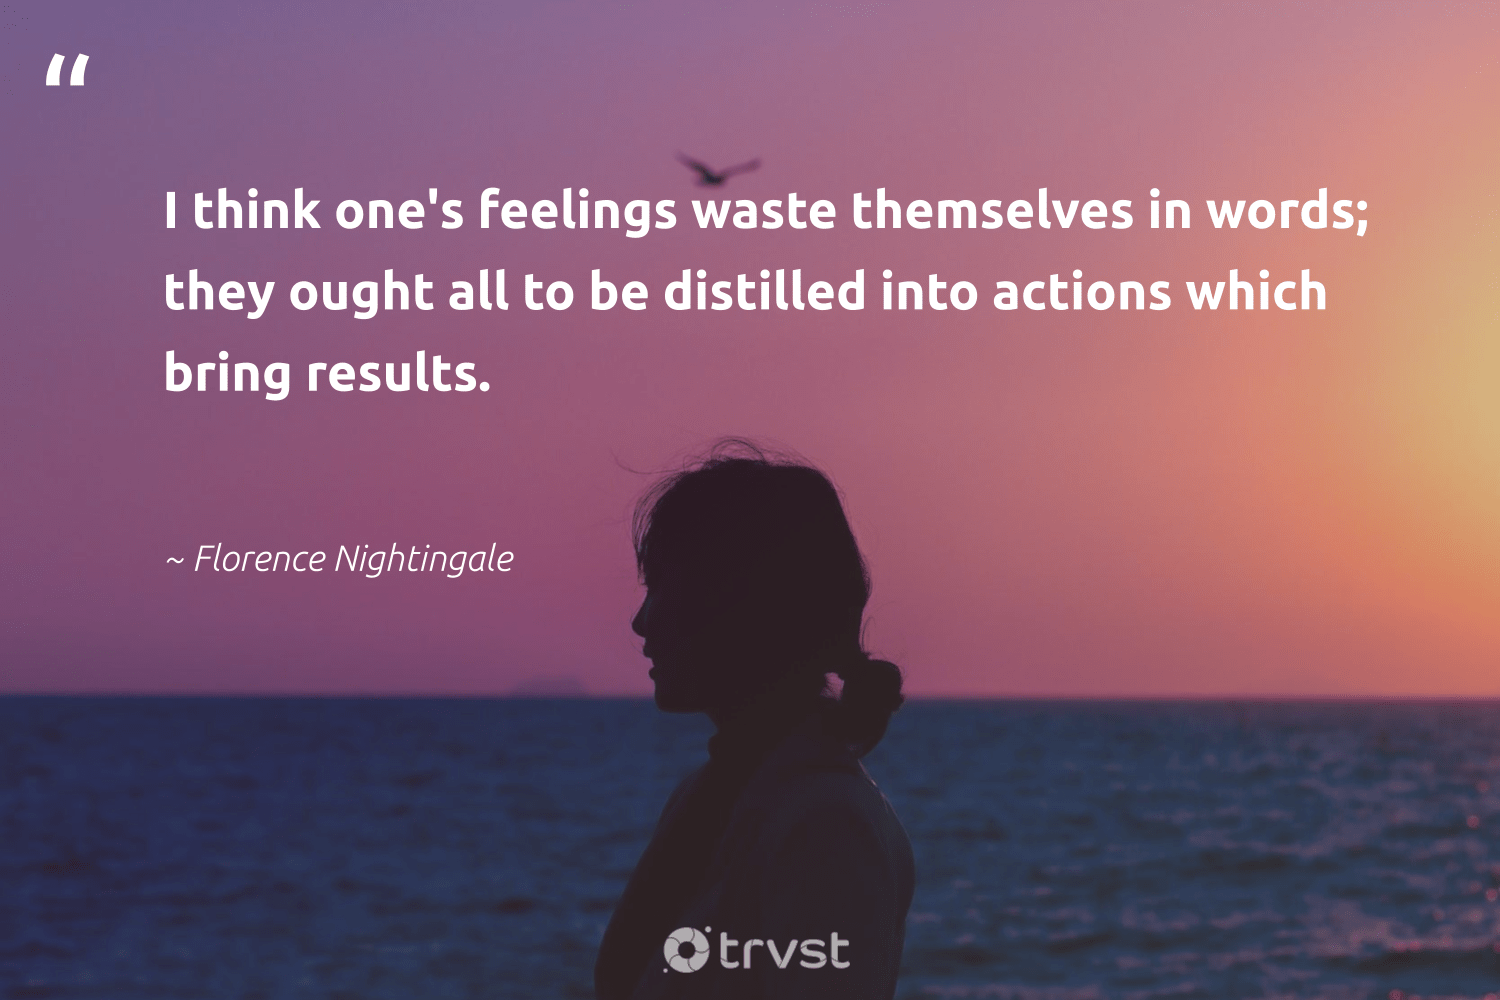 """I think one's feelings waste themselves in words; they ought all to be distilled into actions which bring results.""  - Florence Nightingale #trvst #quotes #waste #results #health #dosomething #togetherwecan #takeaction #begreat #socialchange #changemakers #collectiveaction"